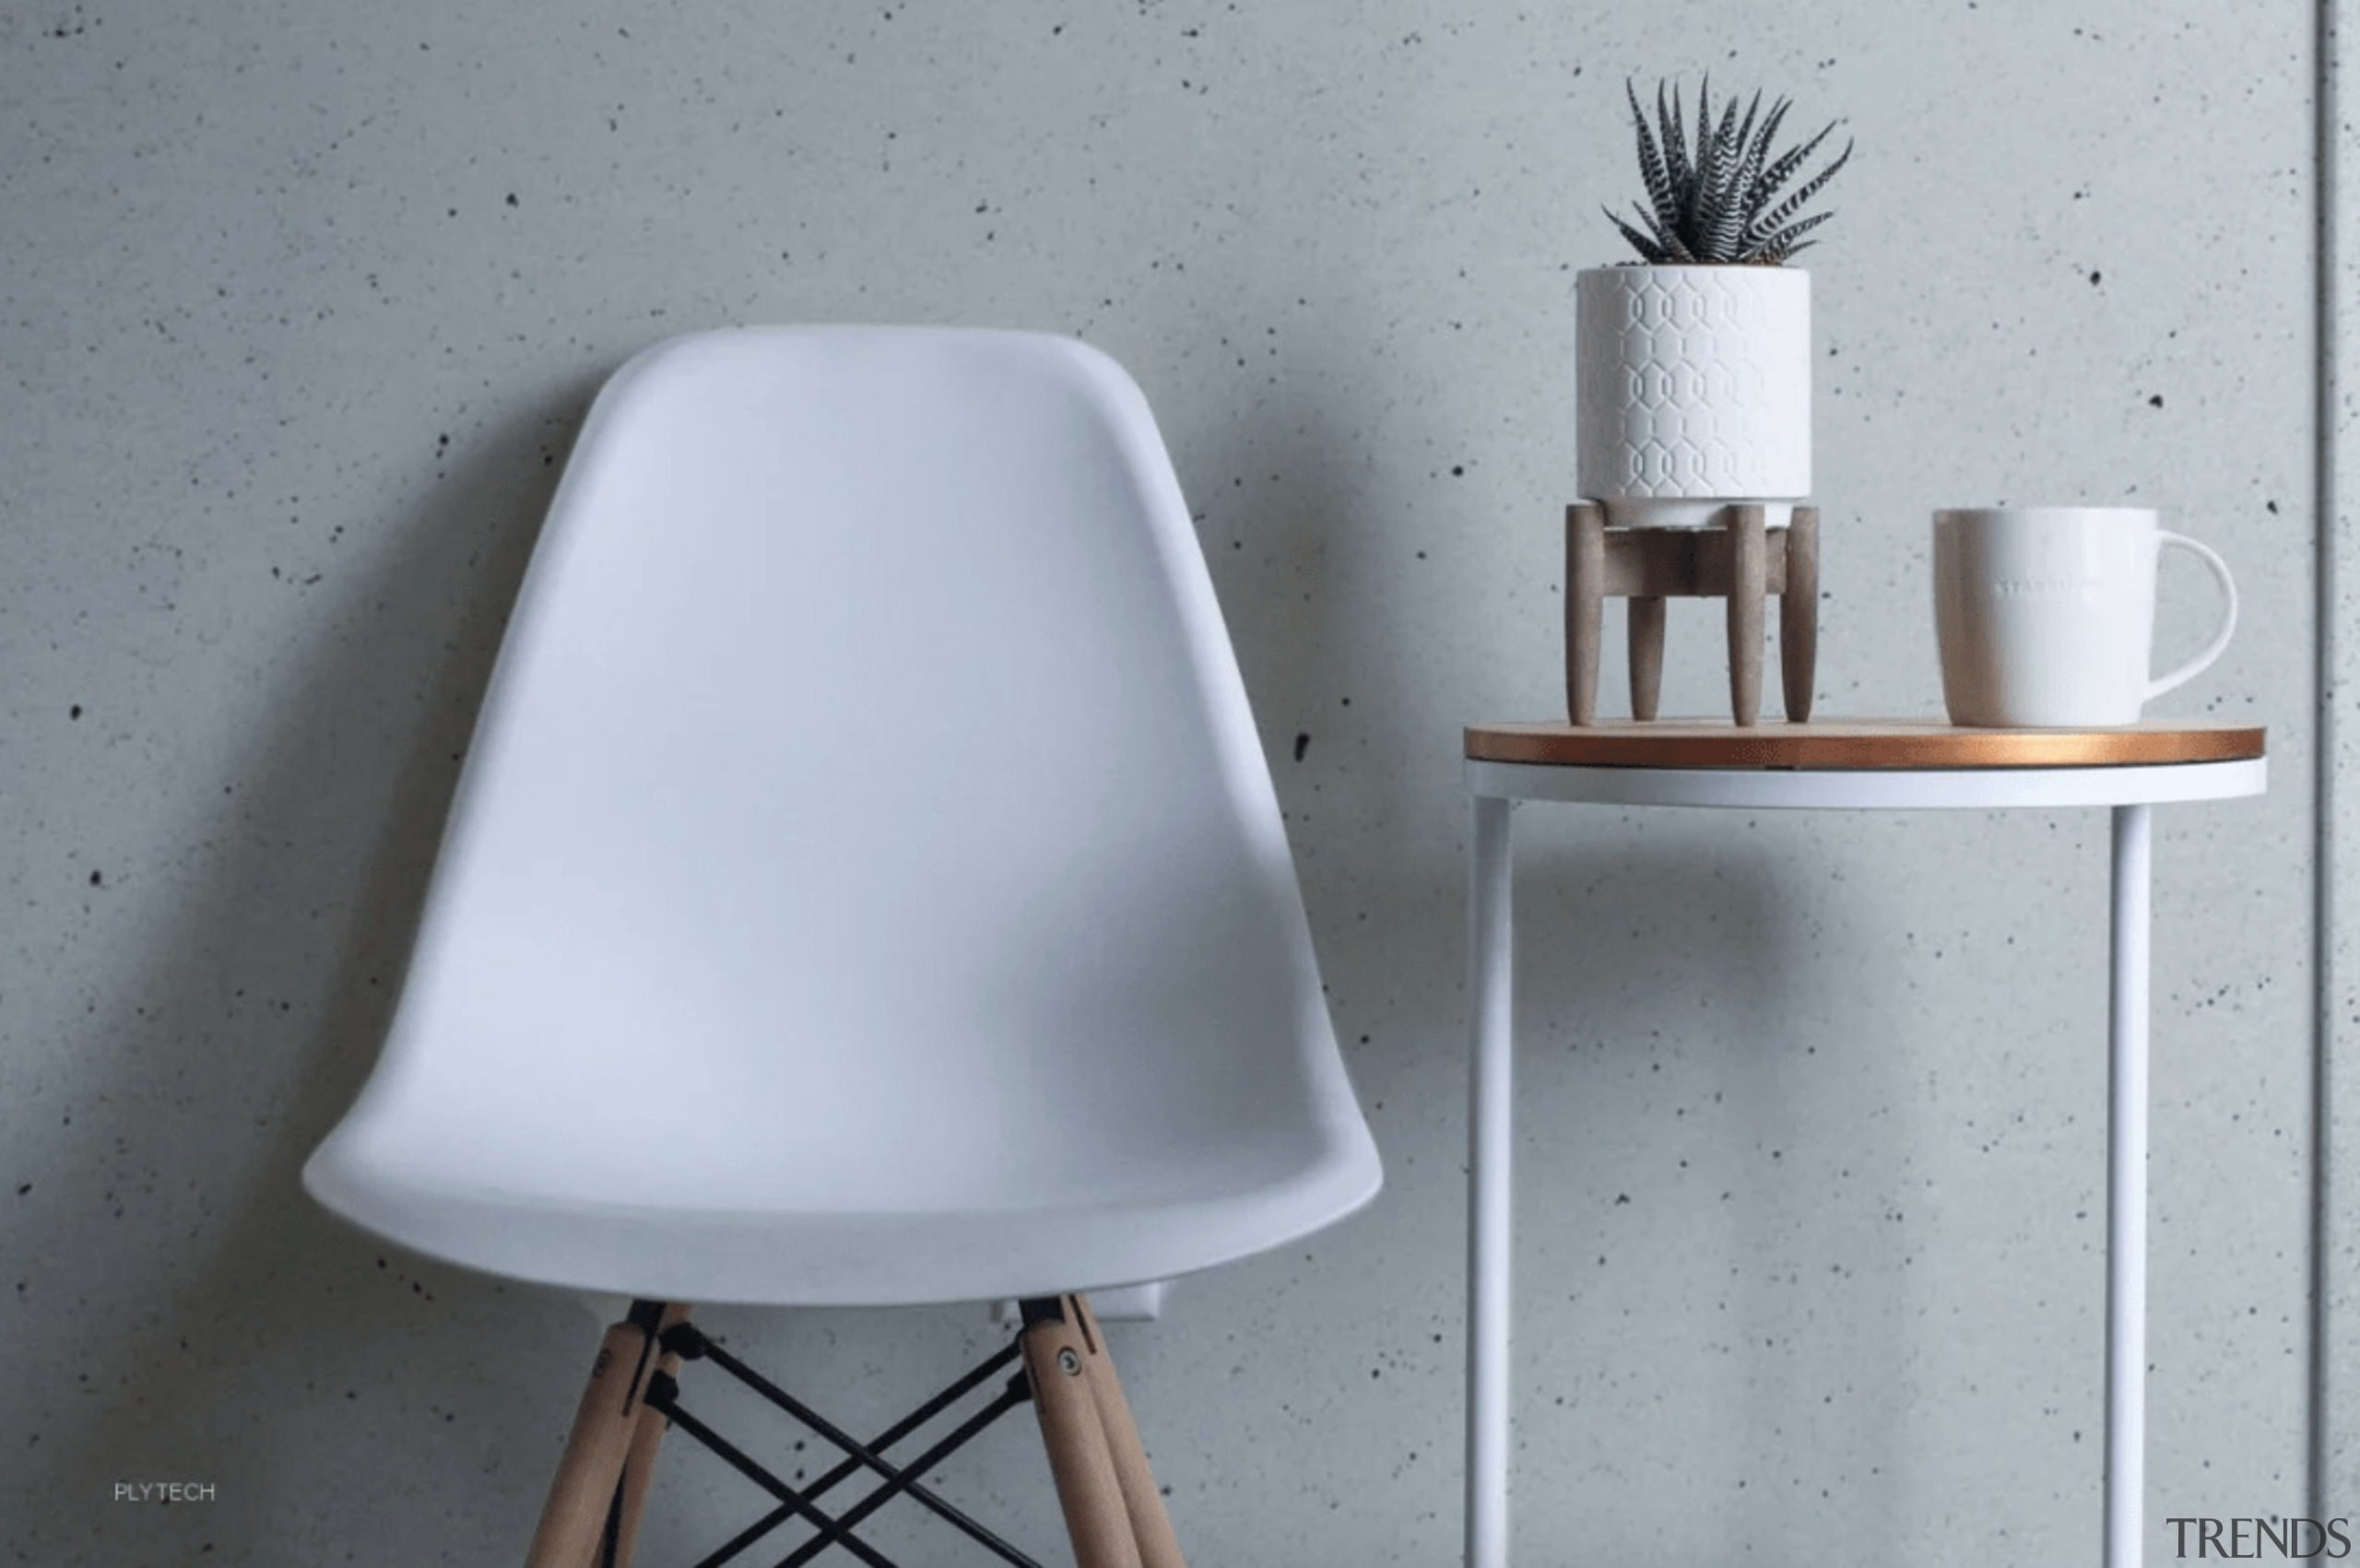 They're available in Classic Grey, Urban Grey, and chair, furniture, table, tap, wall, gray